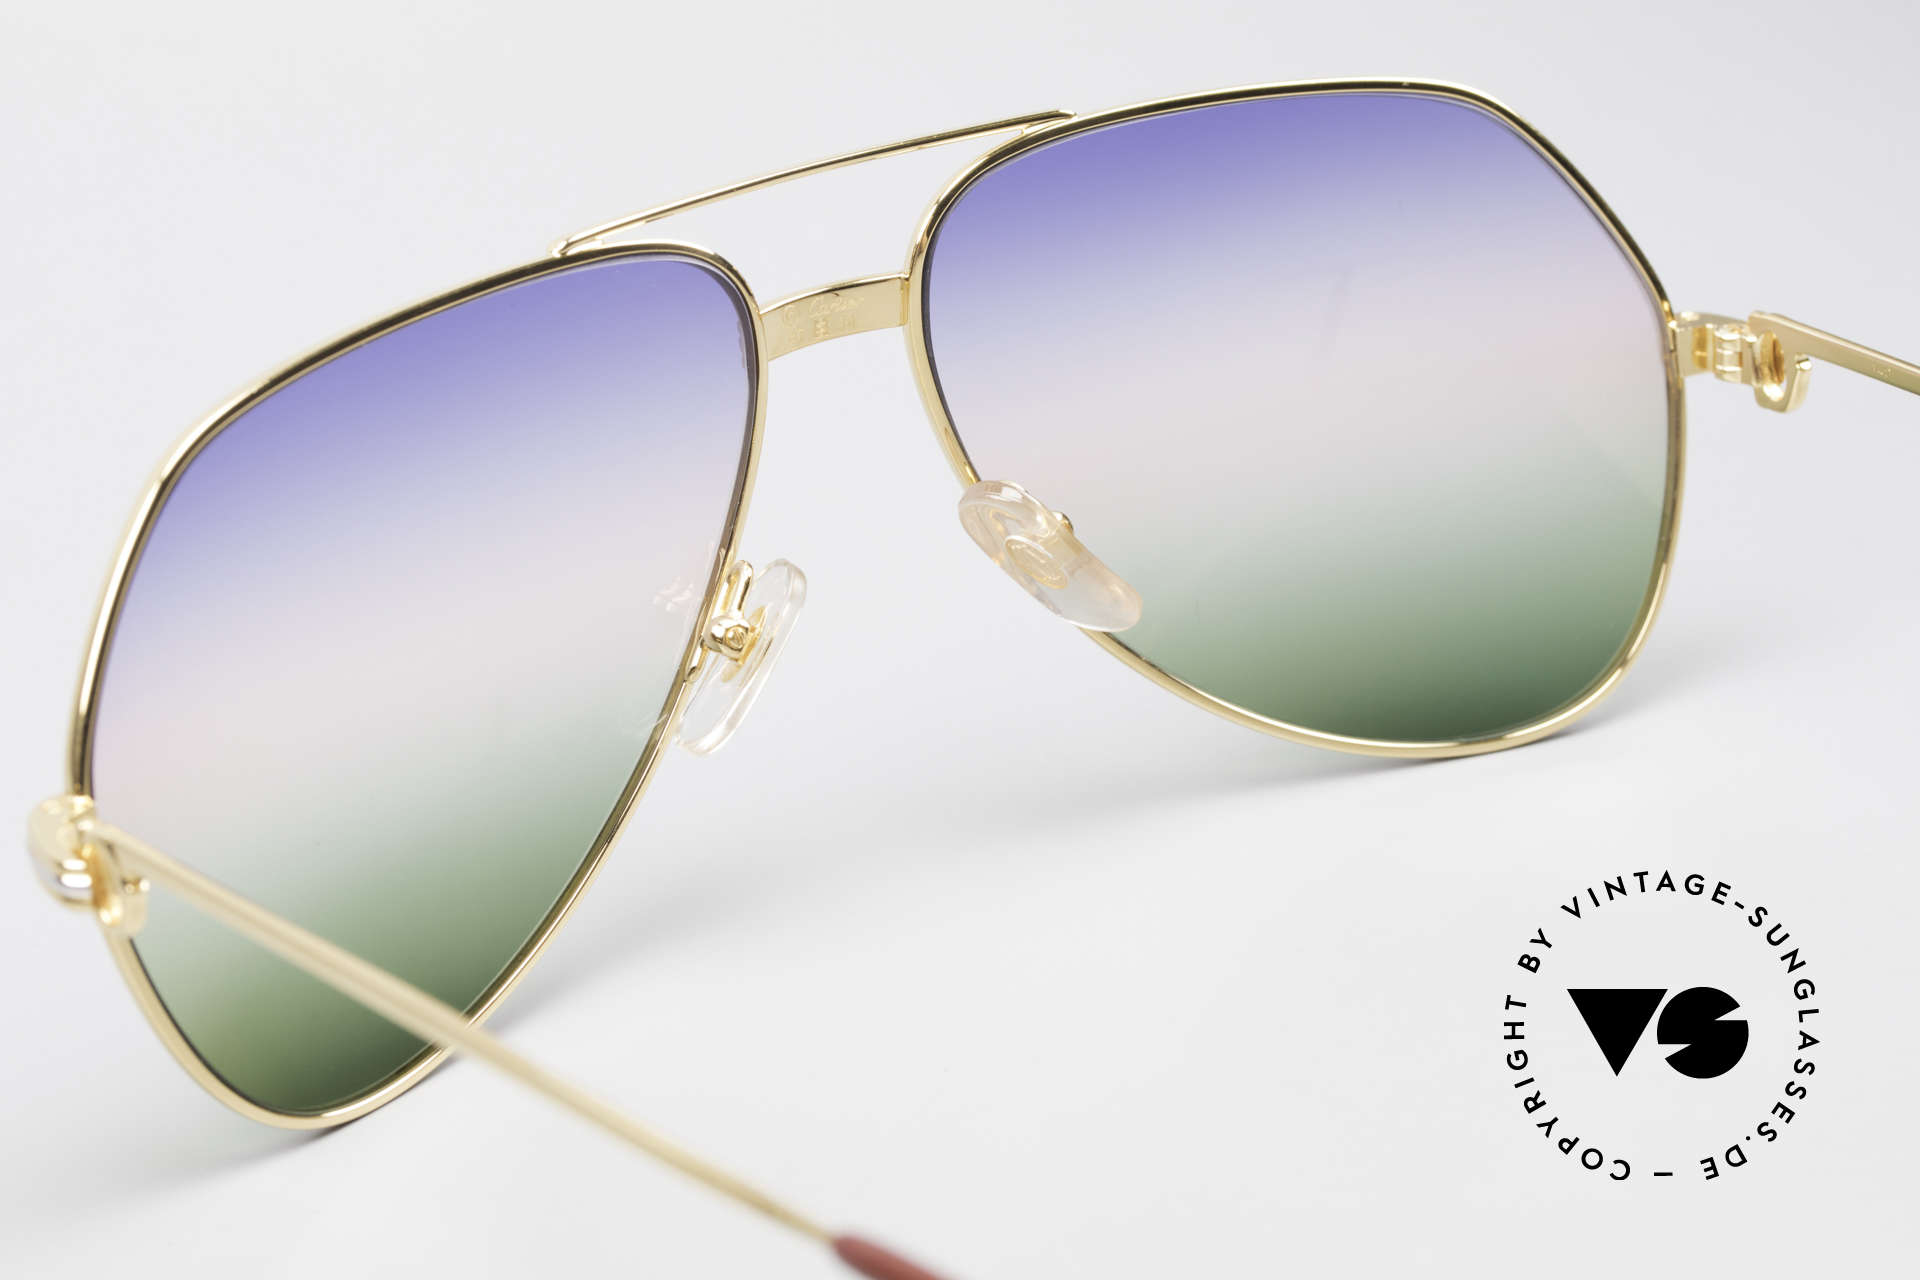 Cartier Vendome LC - L Rare Luxury Sunglasses 80's, unworn with original Cartier packing (collector's item), Made for Men